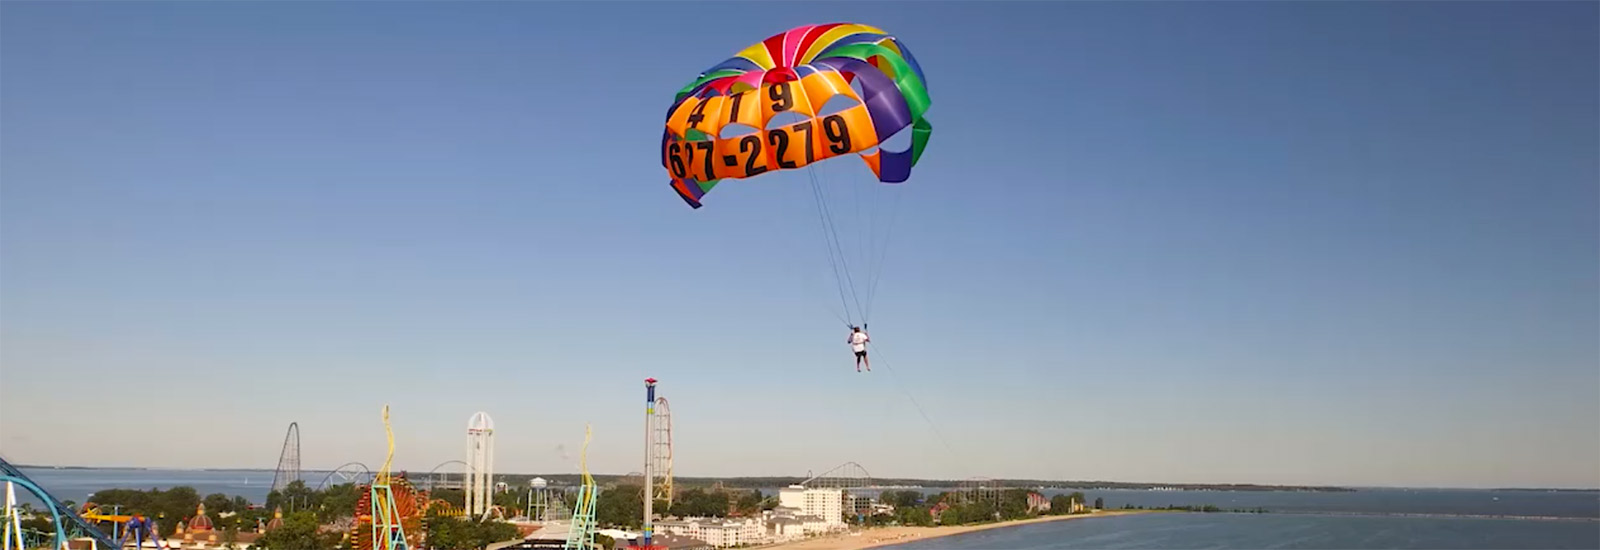 North Coast Parasail Rentals Lake Erie